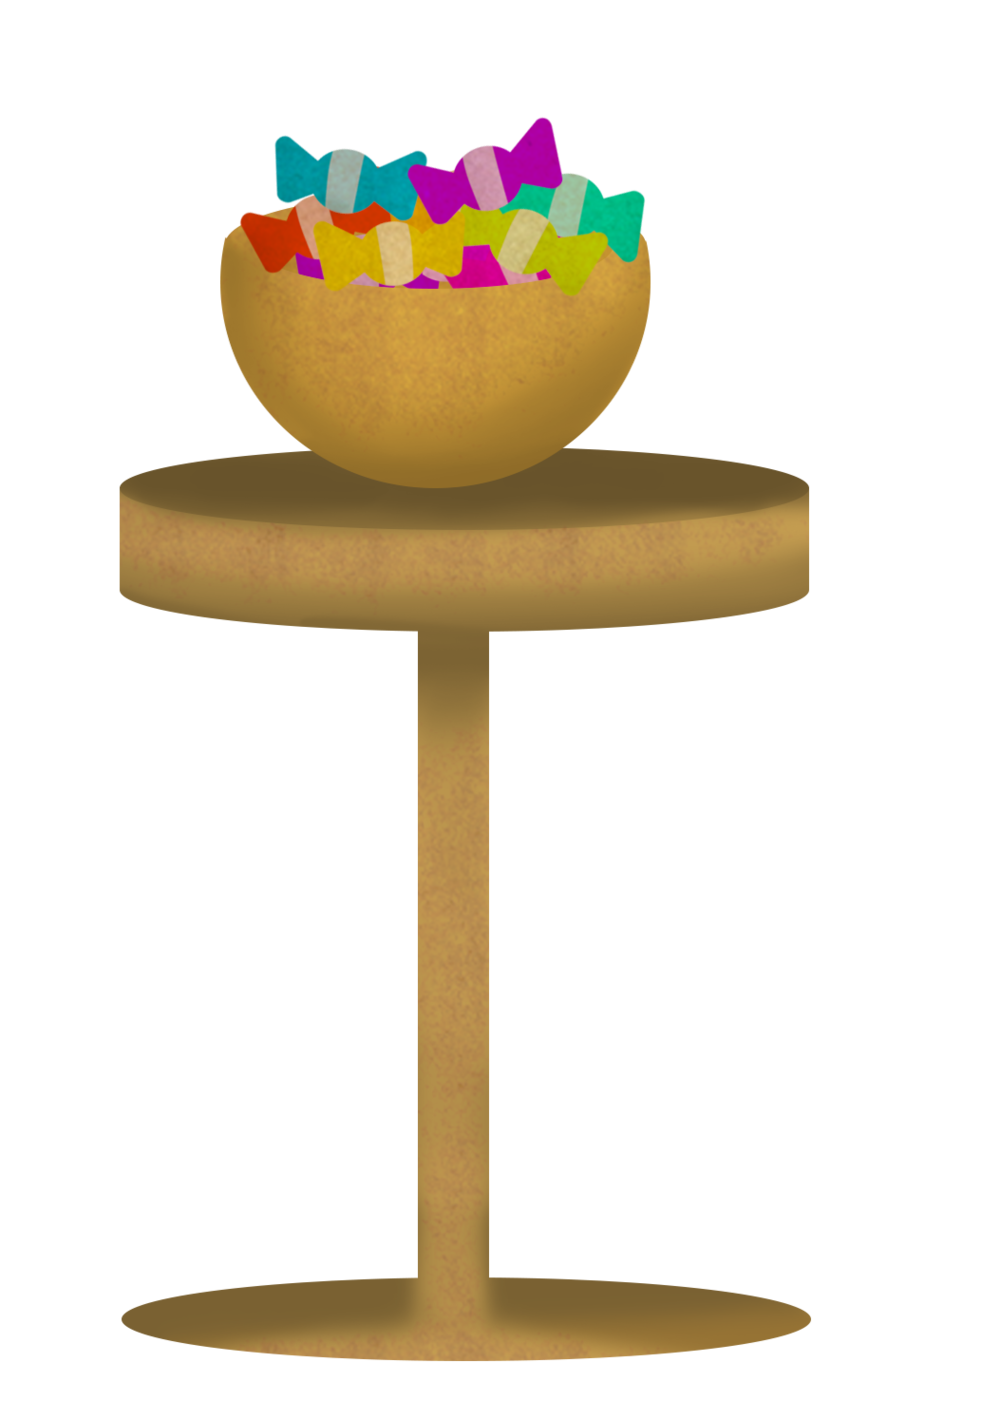 candyBowl.png